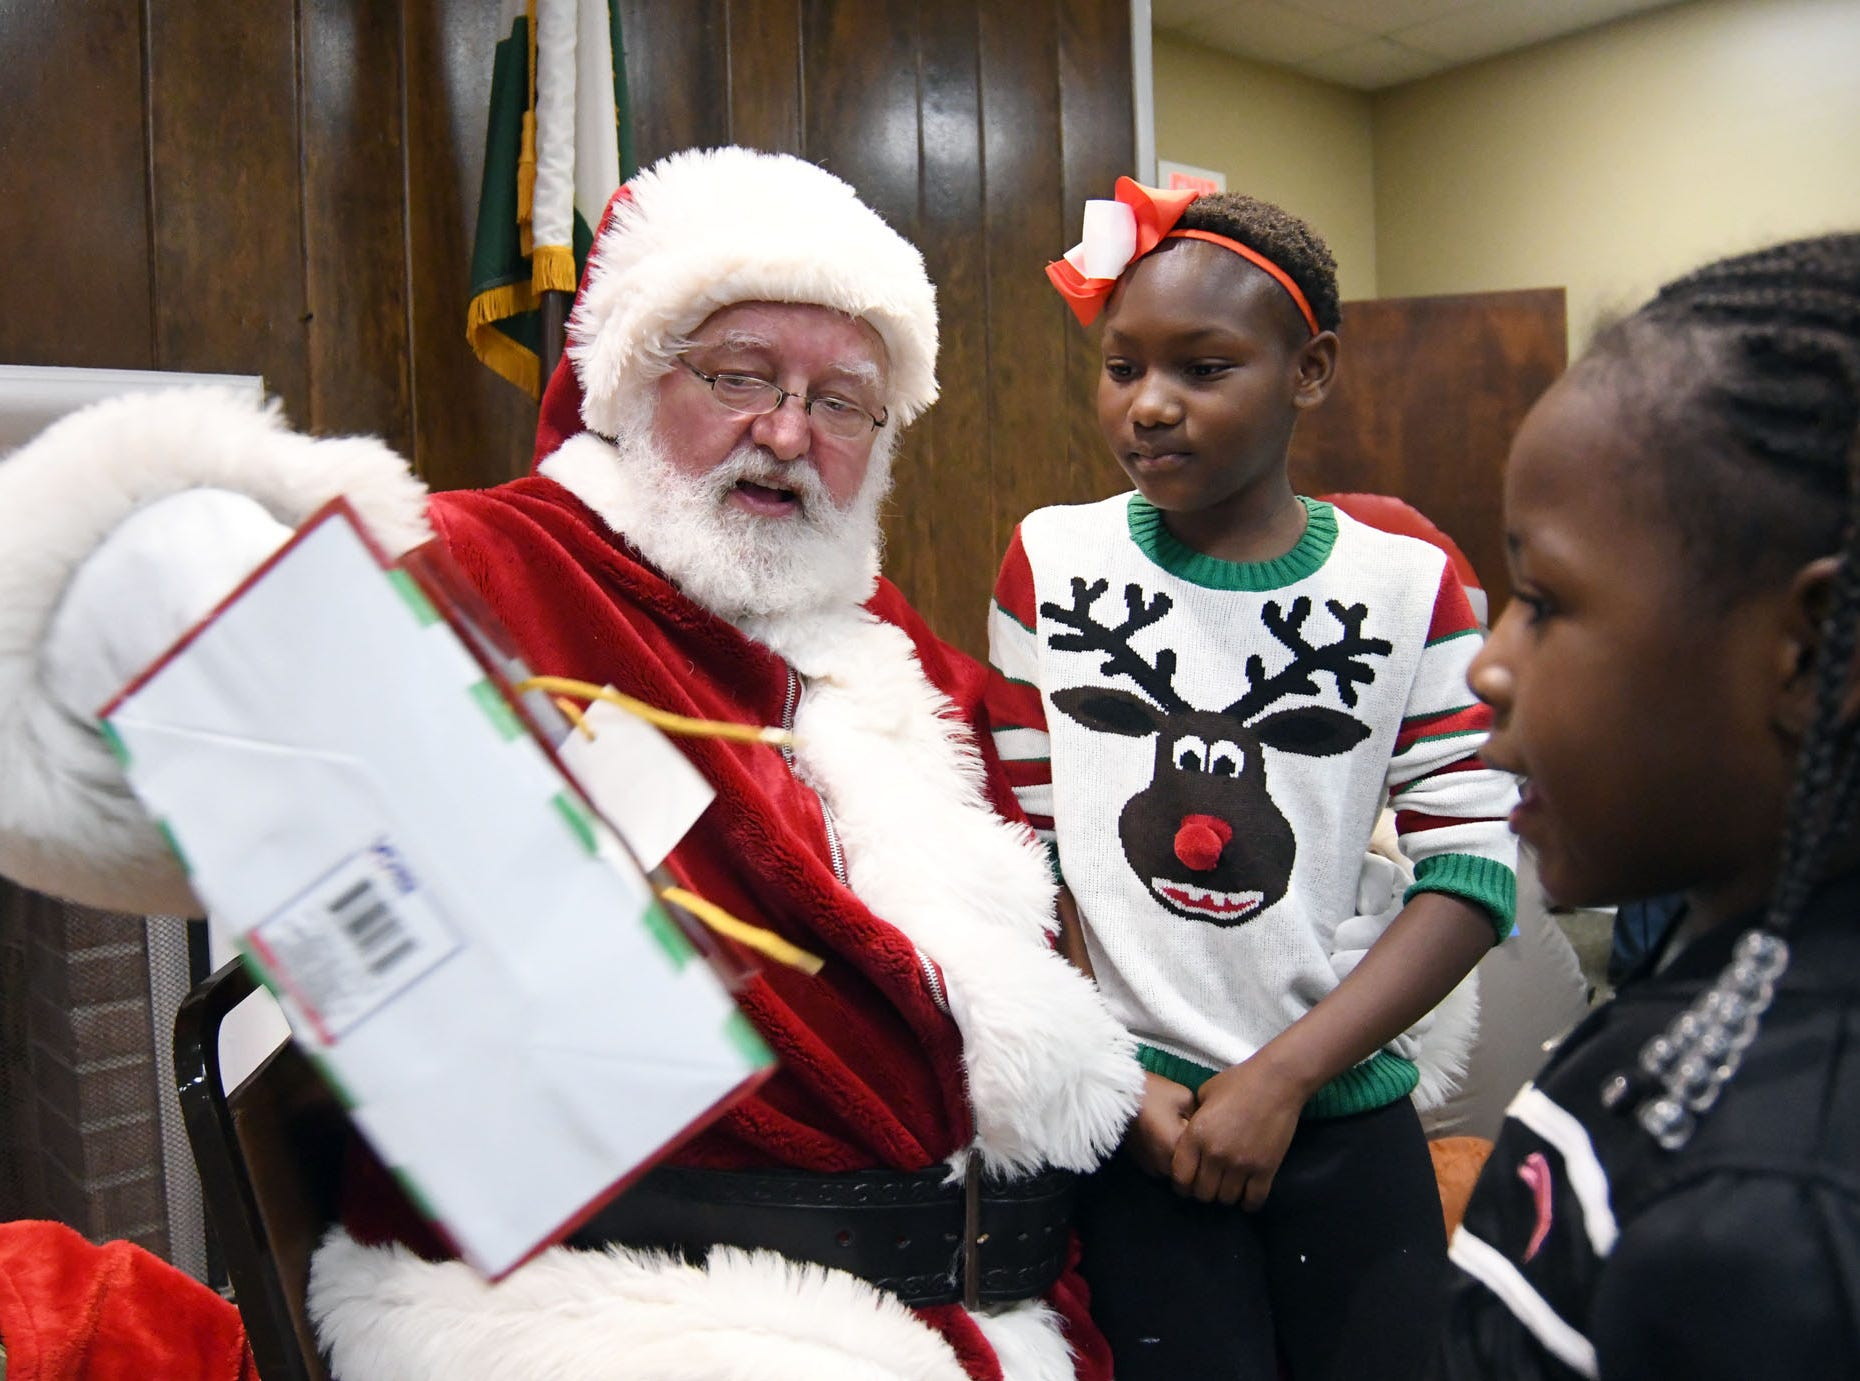 Santa Claus gives out presents during the Hattiesburg Police Department's Victim Service Unit's Hearts of Hope Christmas party for victims affected by violent crimes at Jackie Sherrill Community Center on Thursday, December 20, 2018.